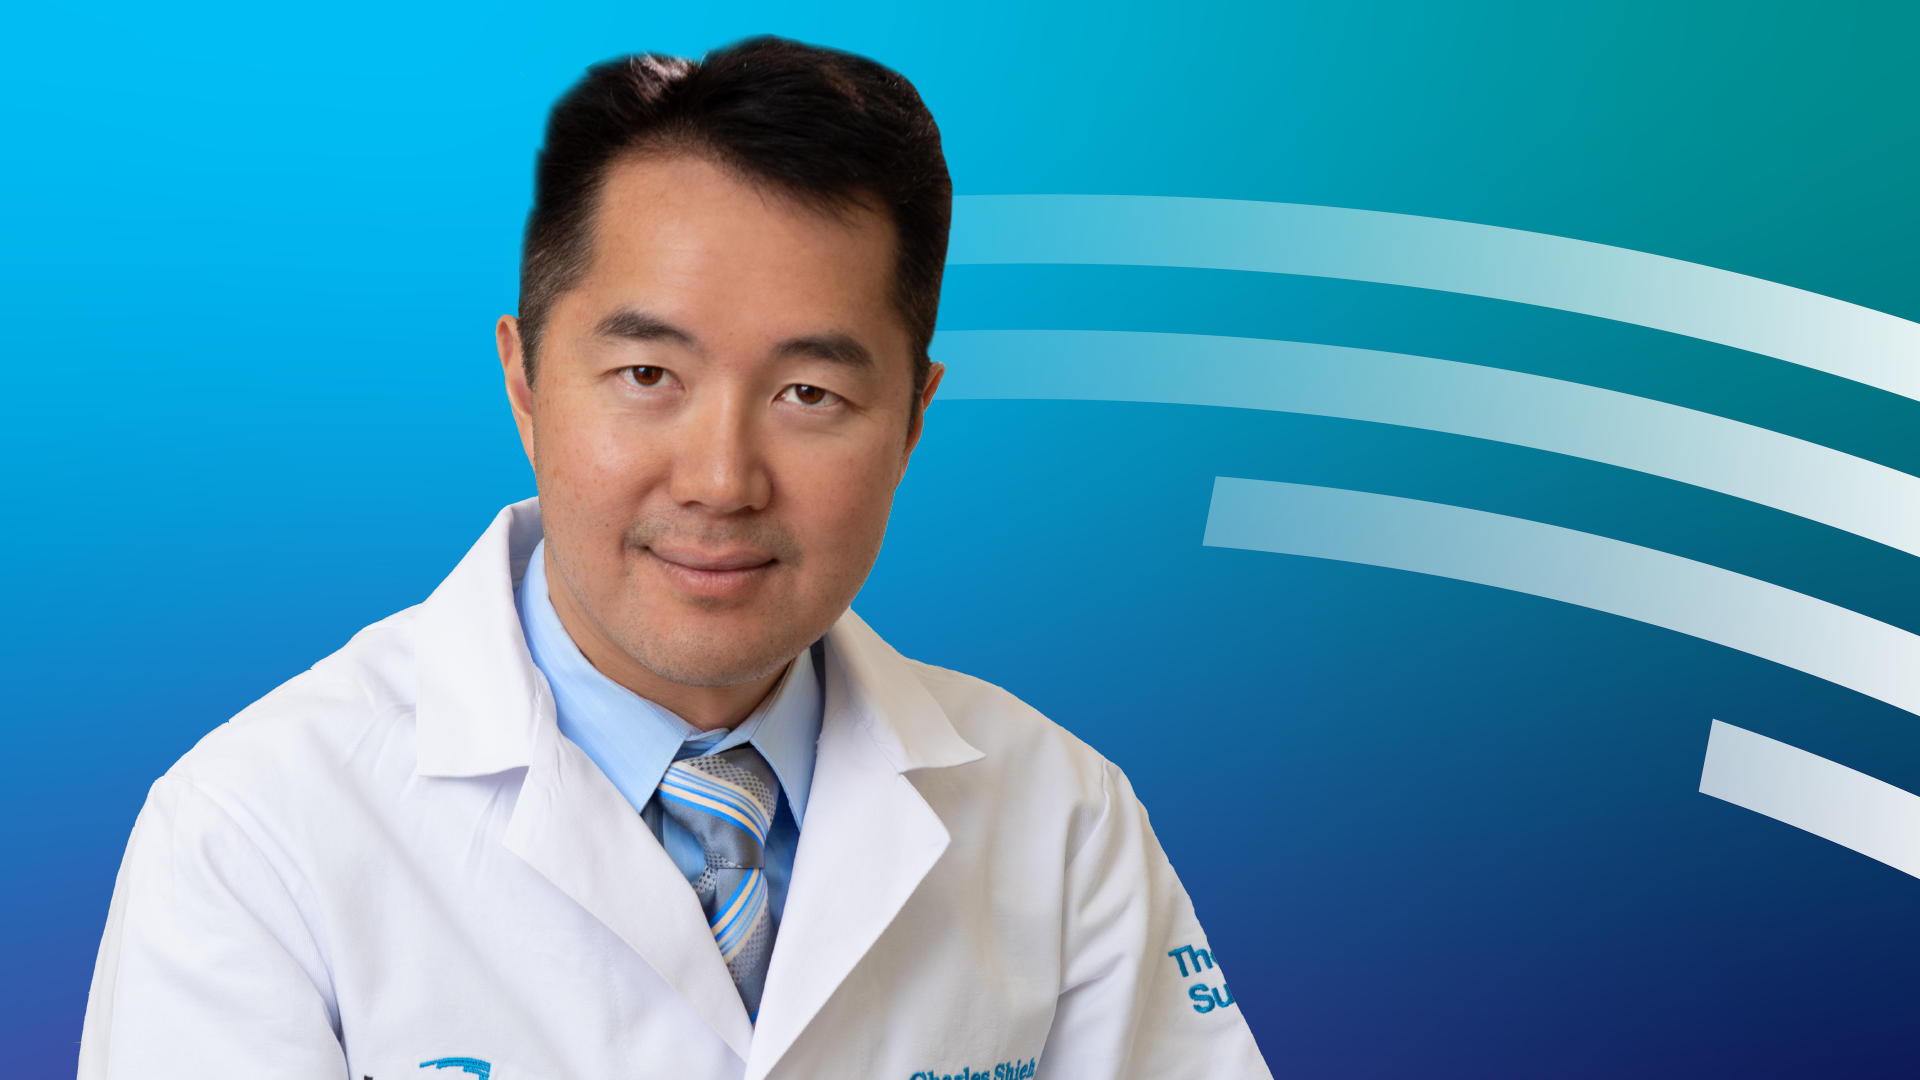 Dr. Charles Shieh